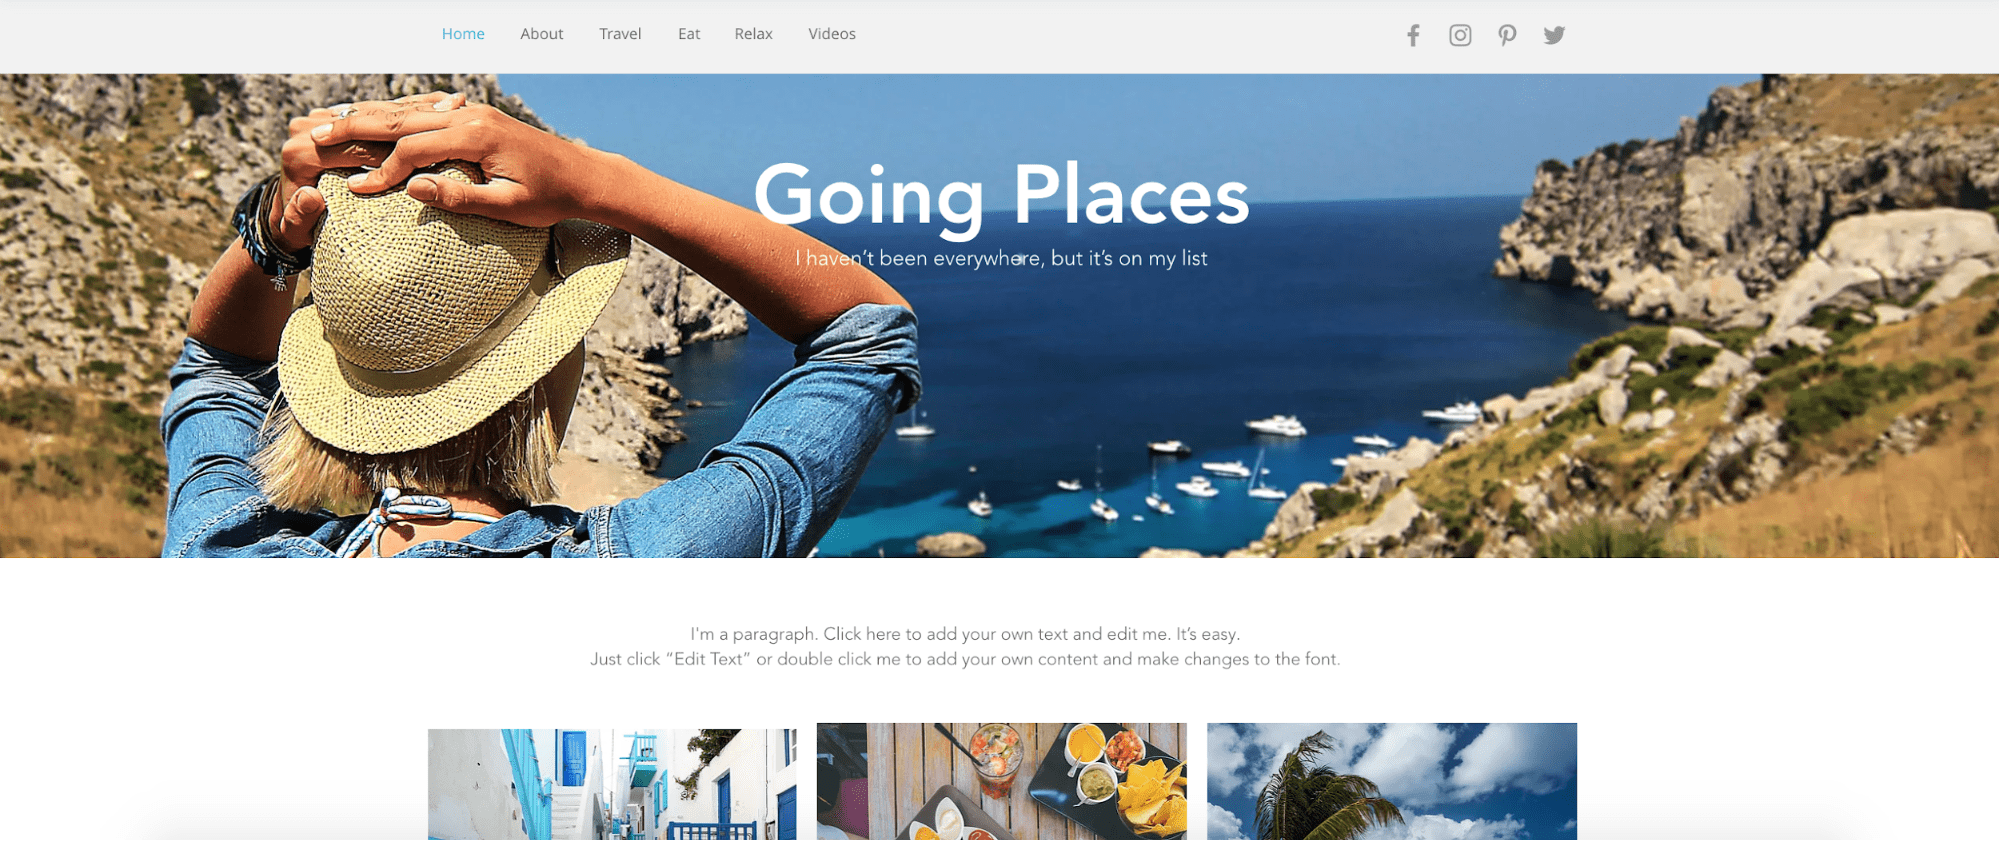 10 Best Wix Templates for Hotels and Travel Websites +Features to Look For